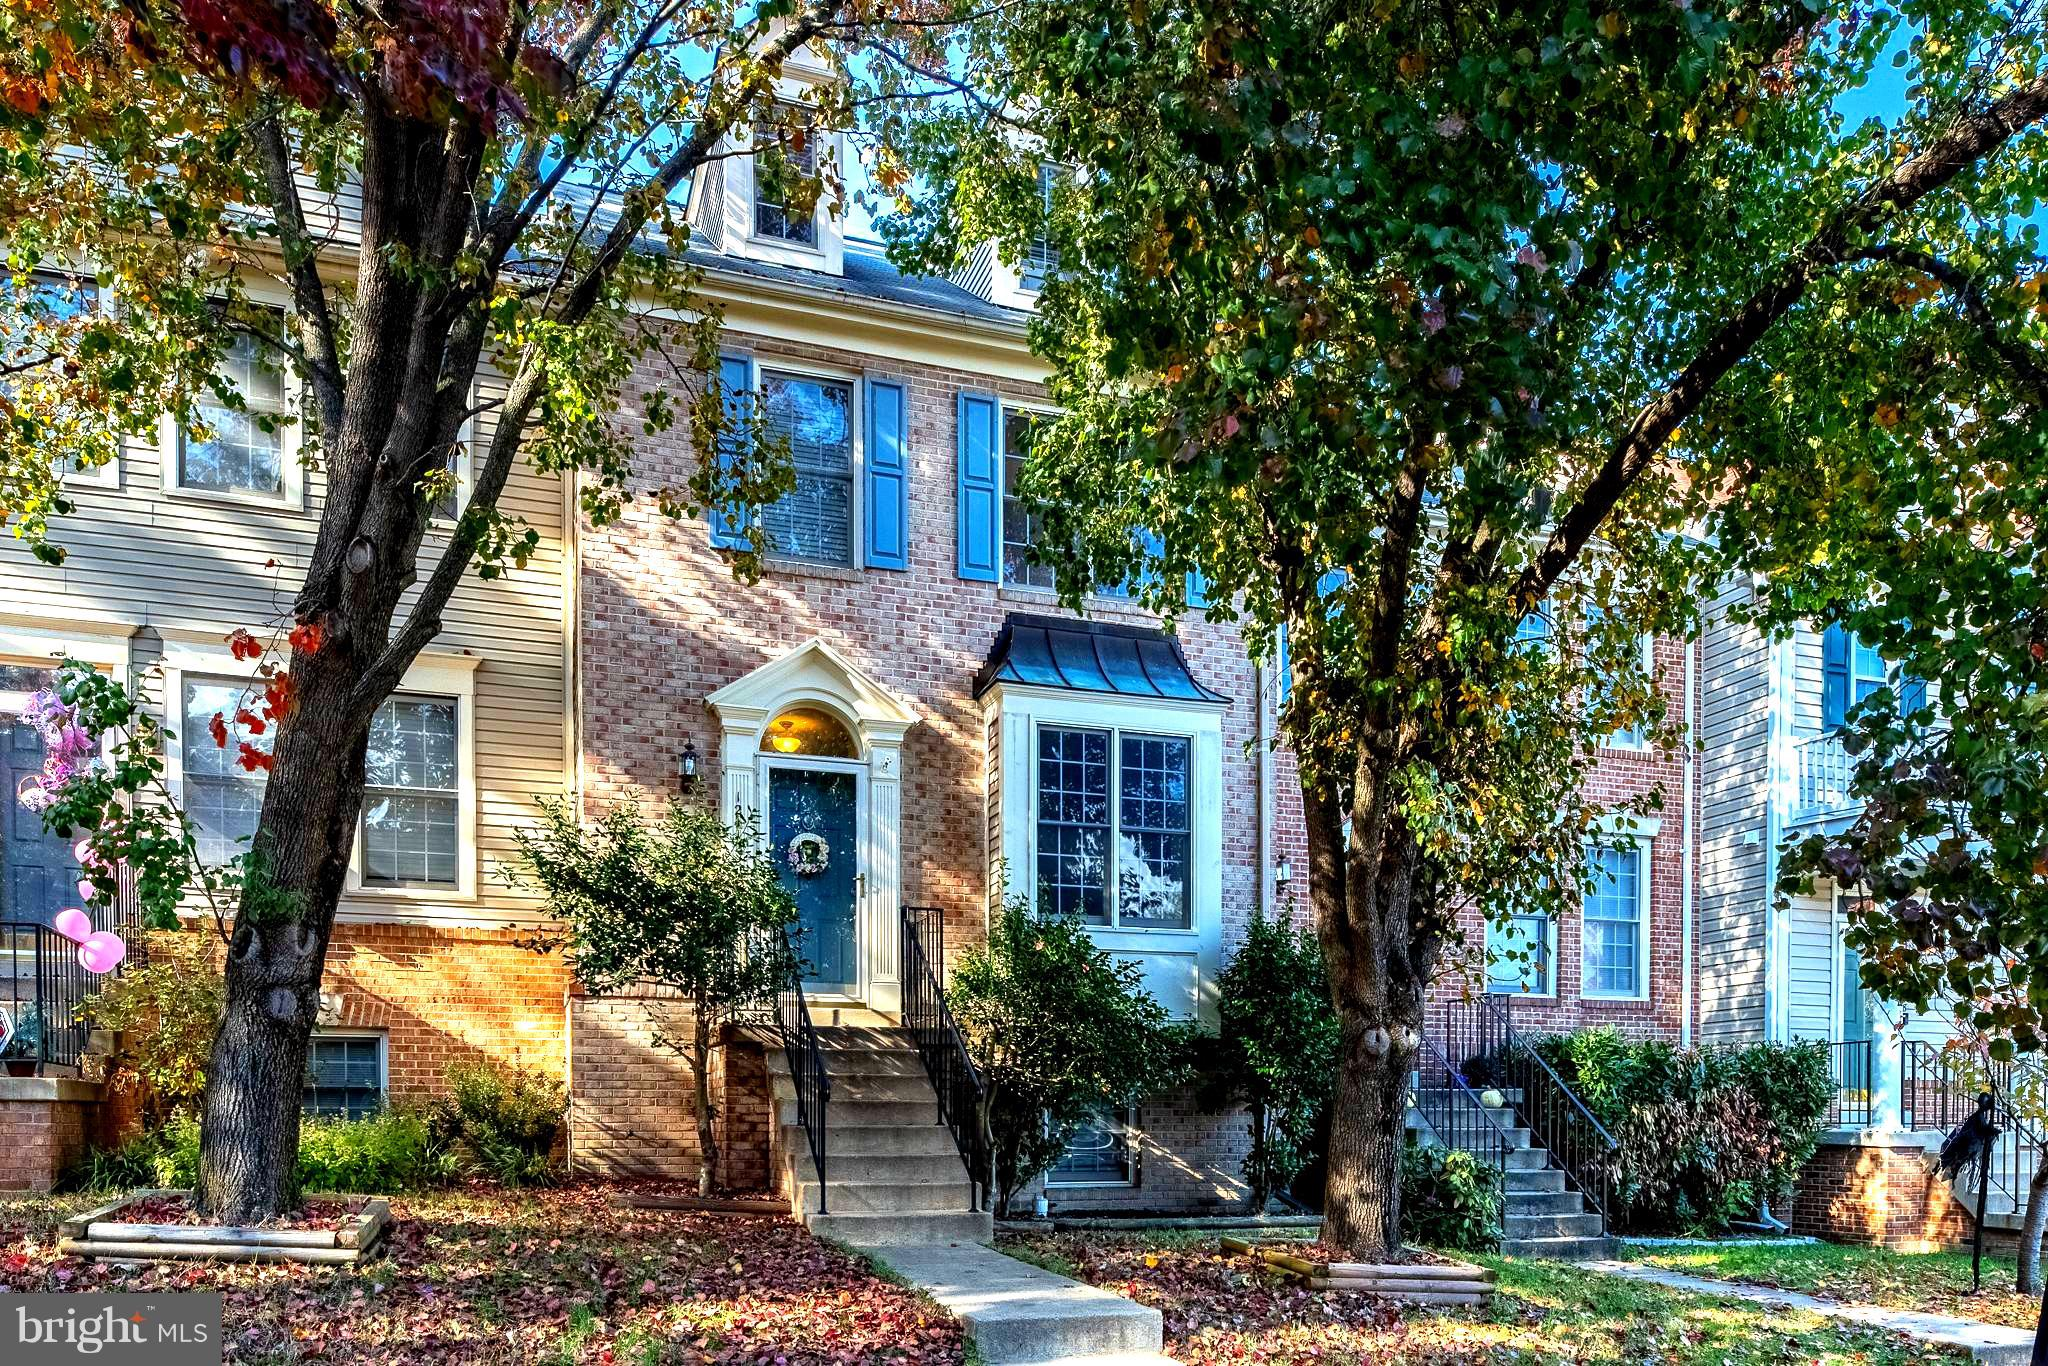 OPEN HOUSES SAT 12/8 & SUN 12/9  2-4PM**** OFFERS REVIEWED AT 5:00 PM ON 12/9.*** AMAZING 4 LEVEL HOME w/ 5 BEDROOMS & 3.5 BATHS* OPEN FLOOR PLAN* MAIN & UPPER LEVEL HARDWOOD FLOORS* EAT-IN KITCHEN w/ GRANITE COUNTERS, NEWER APPLIANCES, SLIDING GLASS DOOR TO LARGE DECK w/ STAIRS TO FENCED BACKYARD* MASTER BEDROOM w/ VAULTED CEILING, LARGE WALK IN CLOSET & EN-SUITE BATH w/ SEP JACUZZI TUB & TILED SHOWER* 4TH FLOOR HAS 4TH SEPARATE BEDROOM/LOFT w/ LARGE CLOSET* LOWER LEVEL w/ 5TH BEDROOM, 3RD FULL BATHRM, REC ROOM, COZY GAS FIREPLACE,  STORAGE ROOM, SLIDING GLASS DOOR TO WALKOUT DECK & FENCED BACKYARD* NEWER HVAC, HOT WATER HEATER, WASHER/DRYER* FANTASTIC COMMUNITY AMENITIES w/ 3 POOLS, TENNIS COURTS, LAKE & TRAILS*